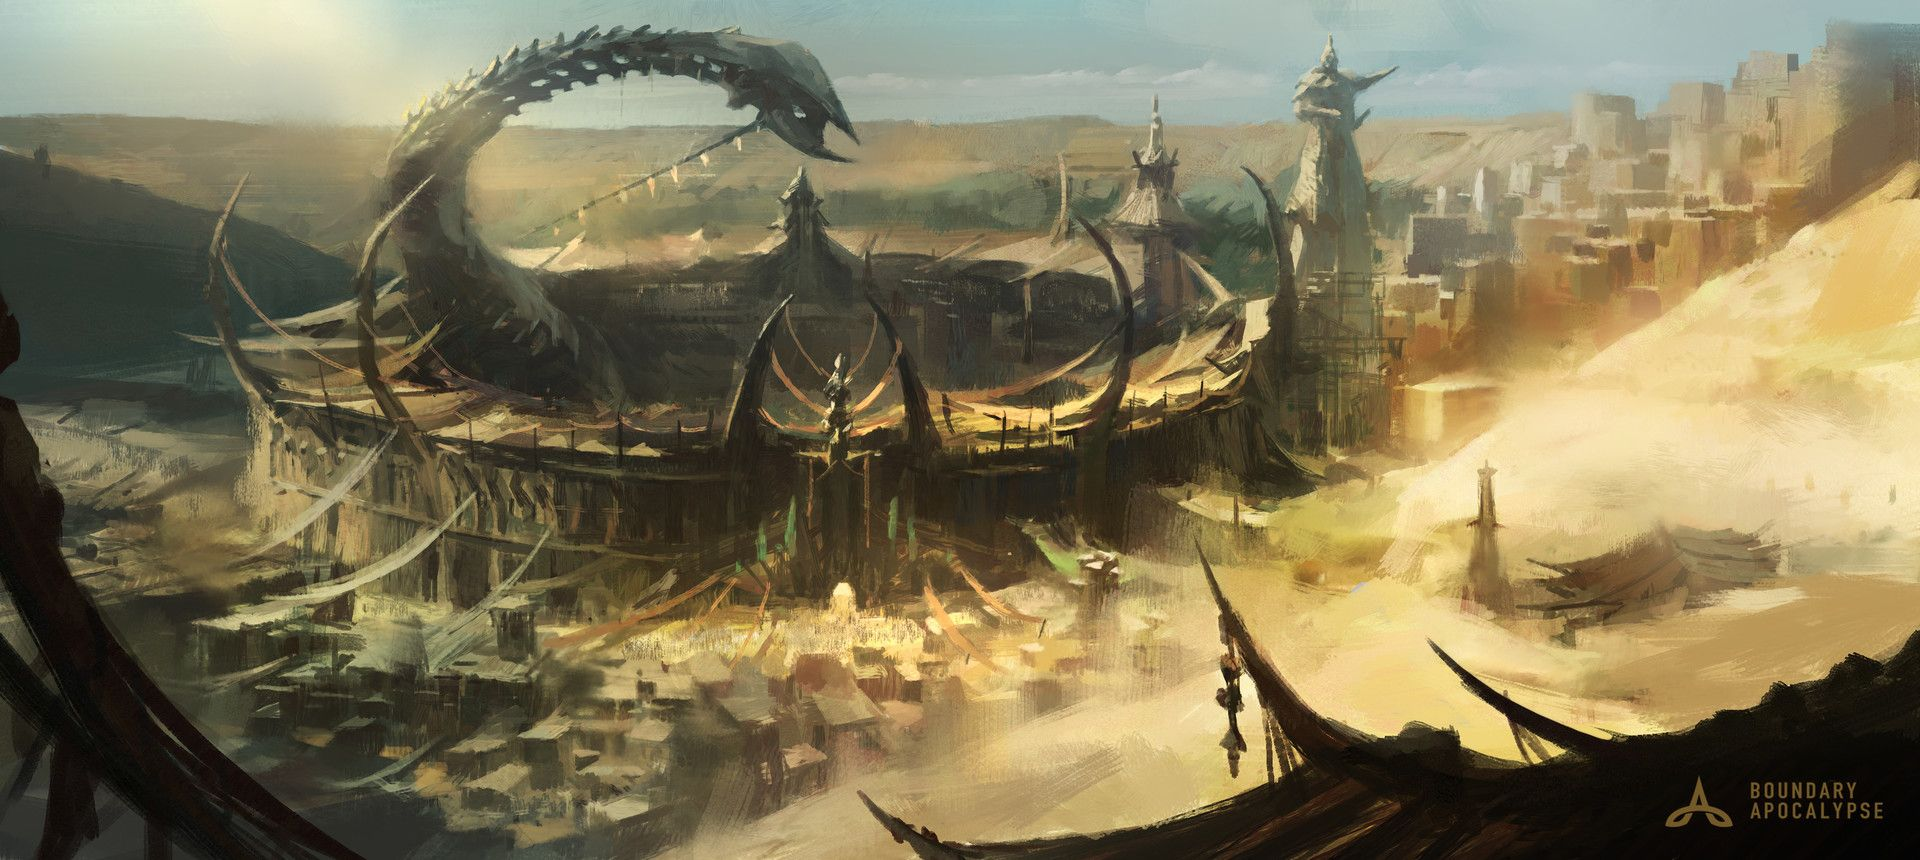 ArtStation - Arena _Story illustration——BOUNDARY APOCALYPSE, D. Rock-Art